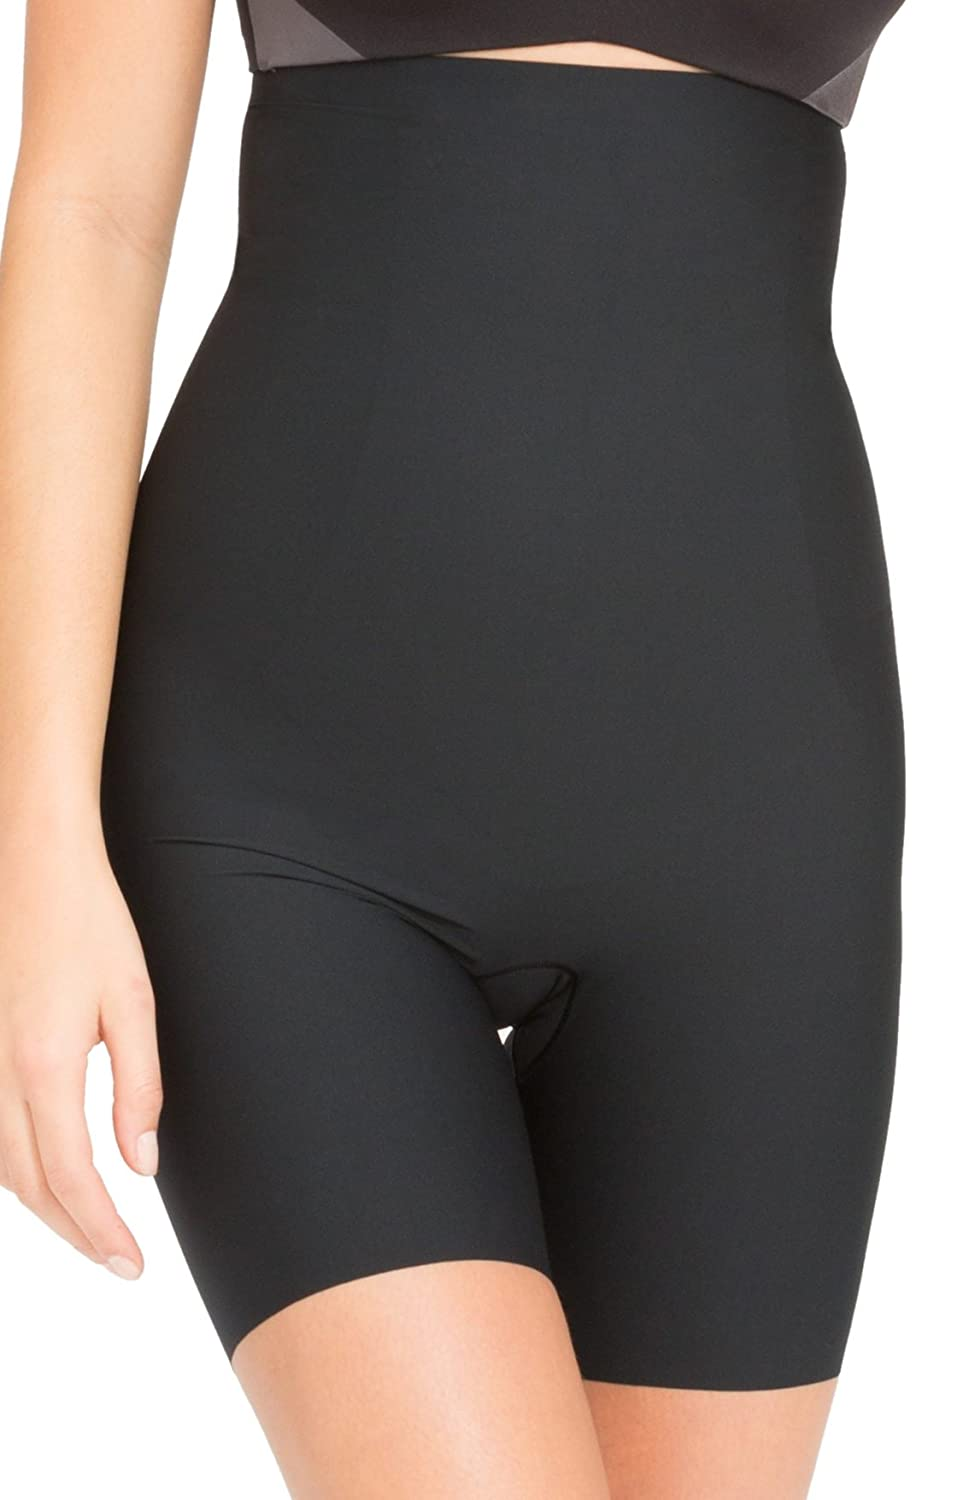 387d1d33d3b26 Spanx Deluxe Slimming Shapewear Thinstincts High-Waisted Mid-Thigh Shorts